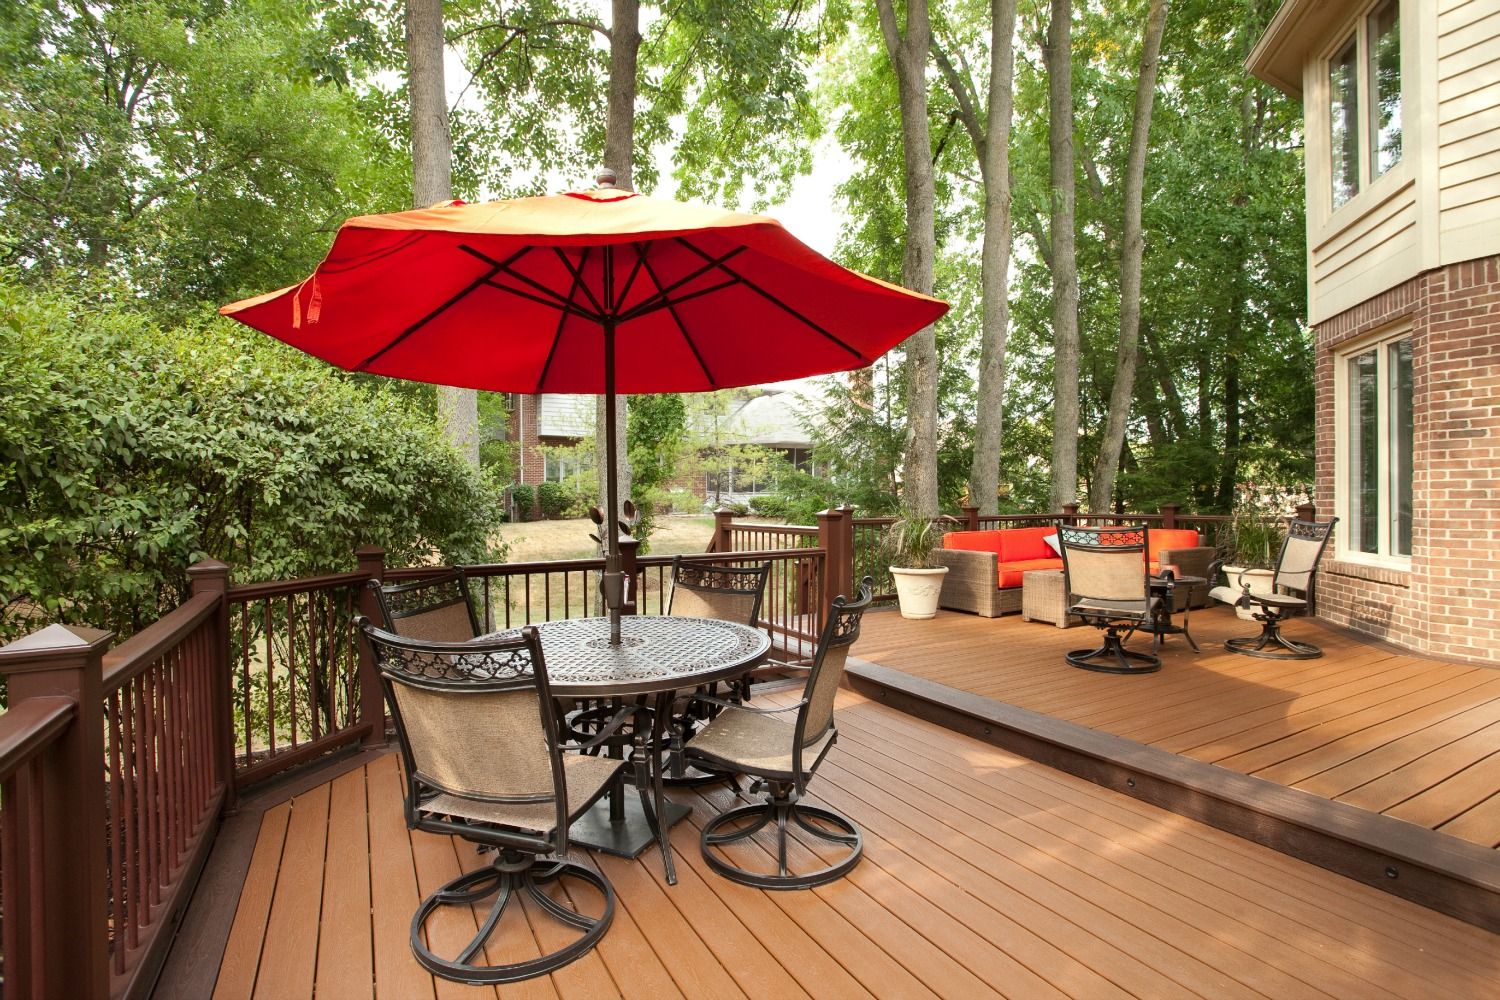 Modern Outside Decks For Outdoor Lounge: Outdoor Dining Set With Red Parasol Outstanding Outside Decks Design